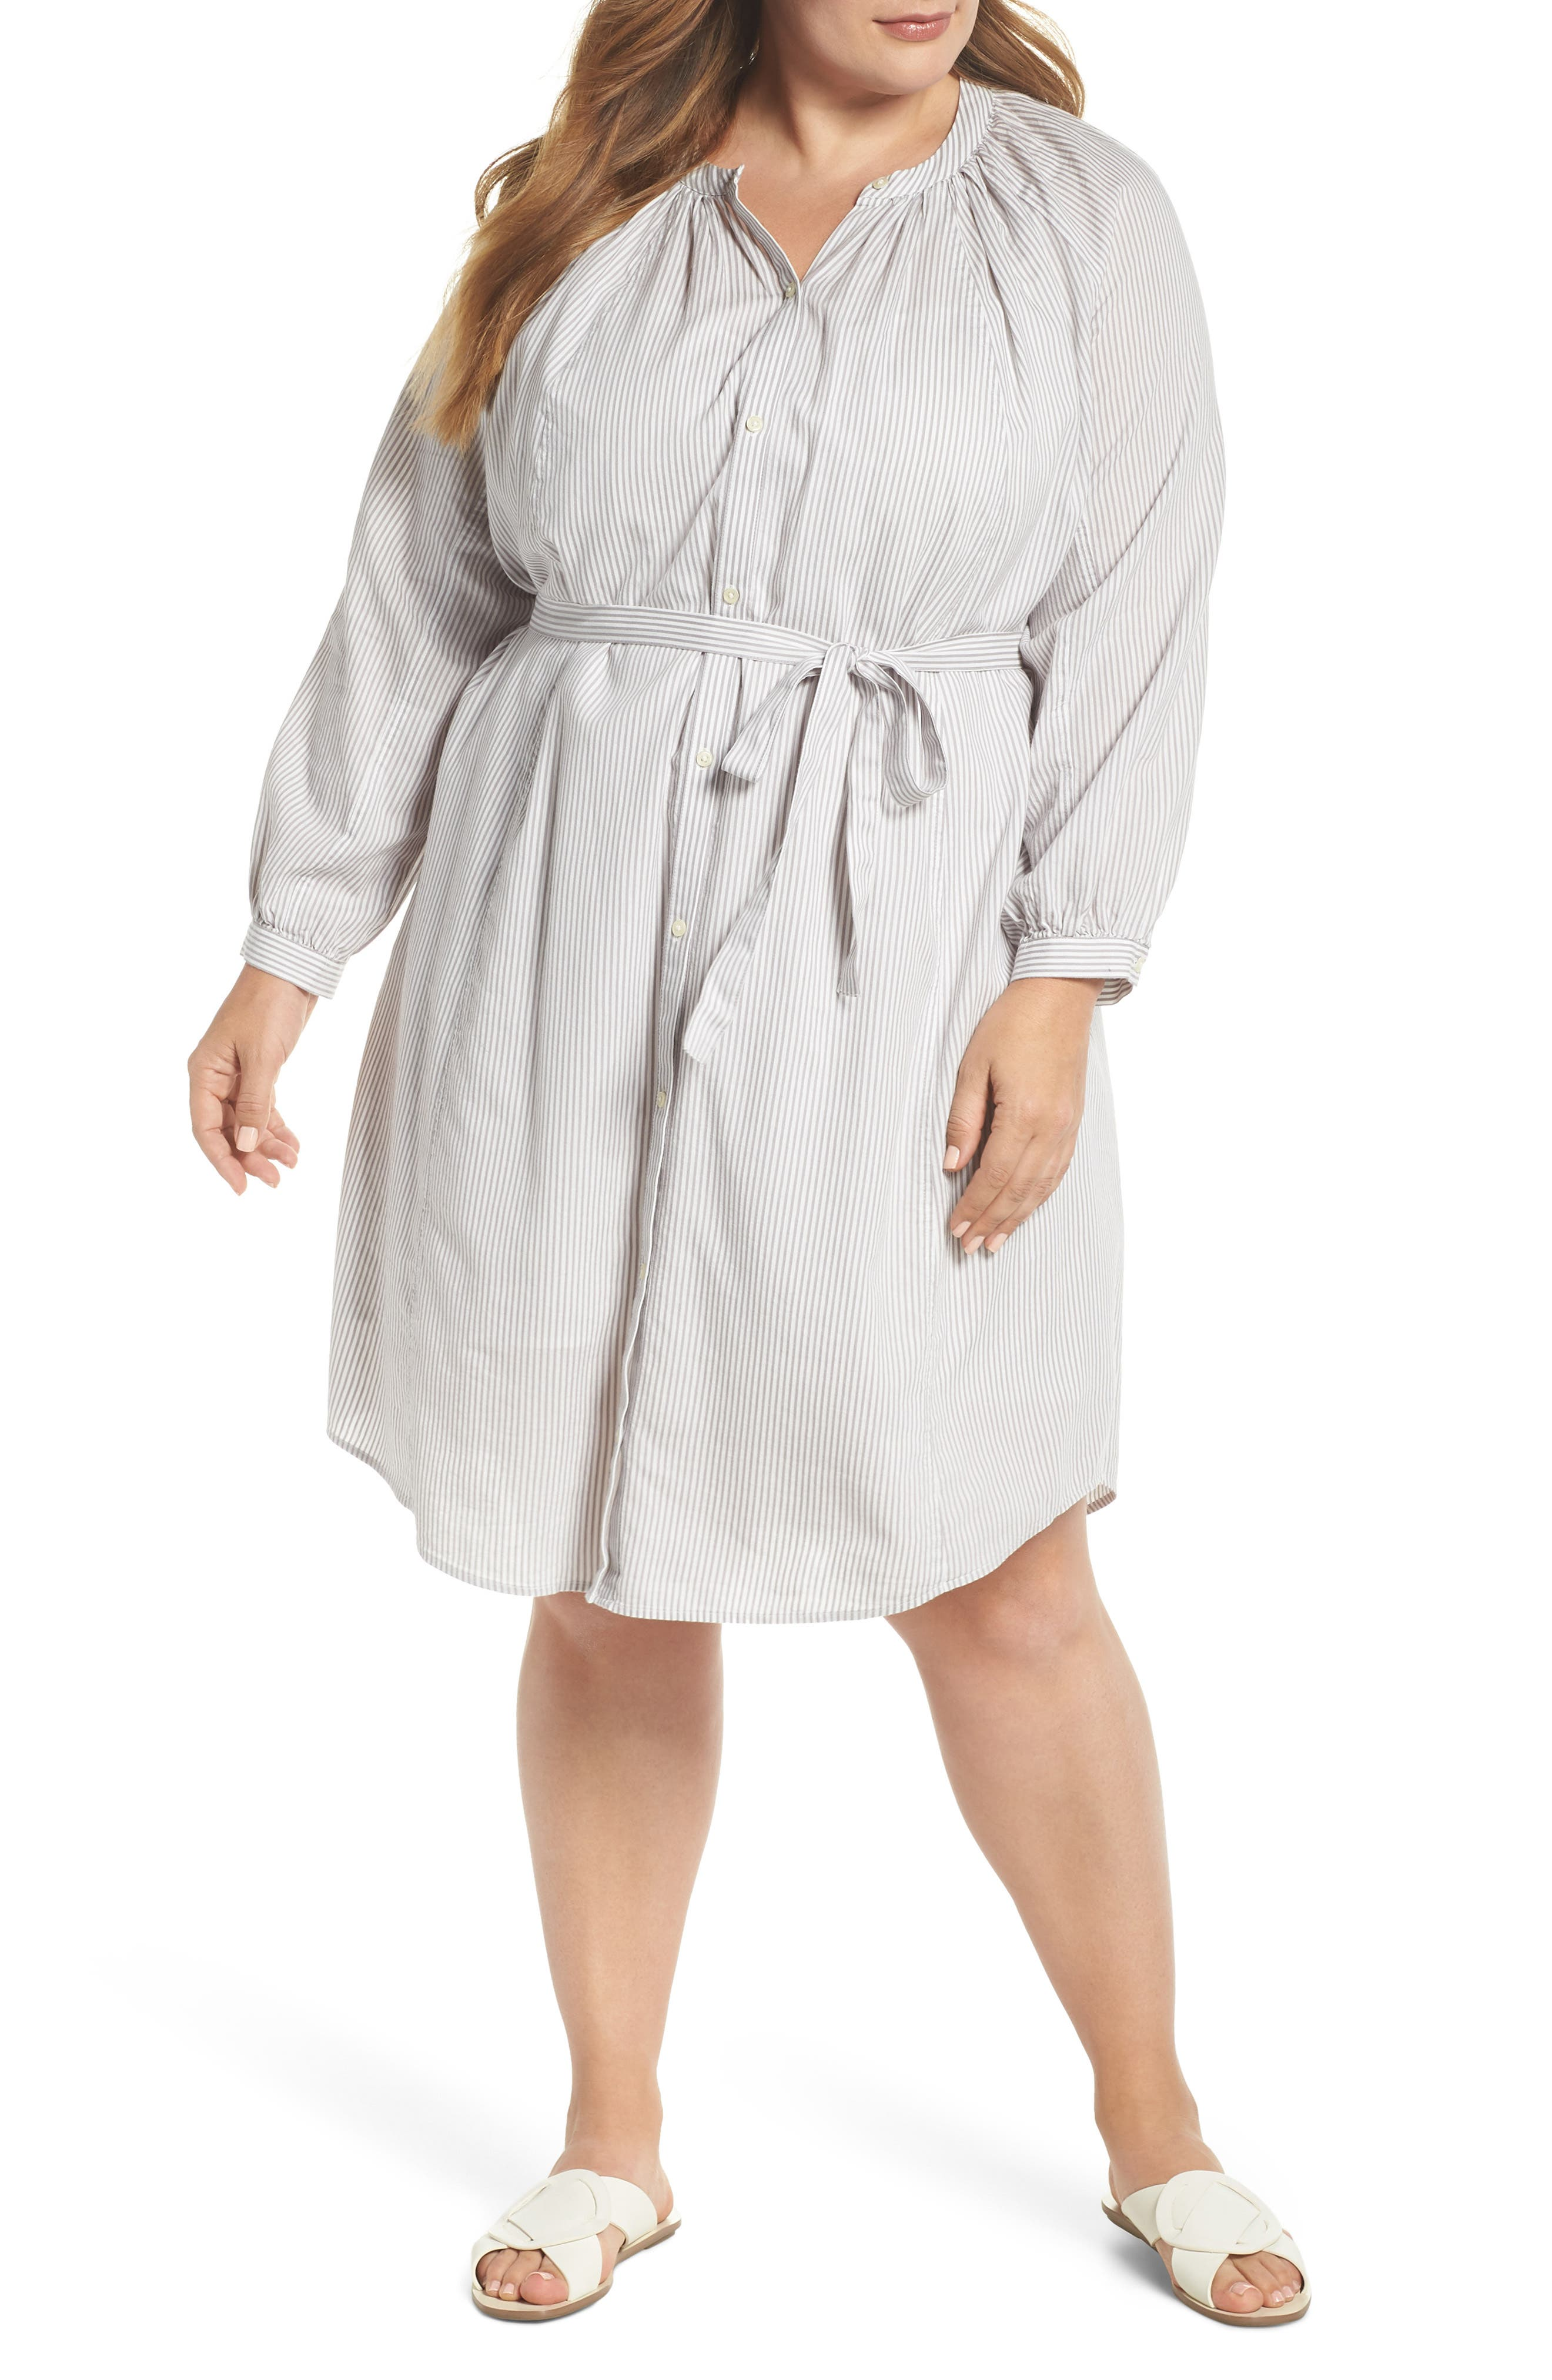 LUCKY BRAND Stripe Peasant Dress, Main, color, 060